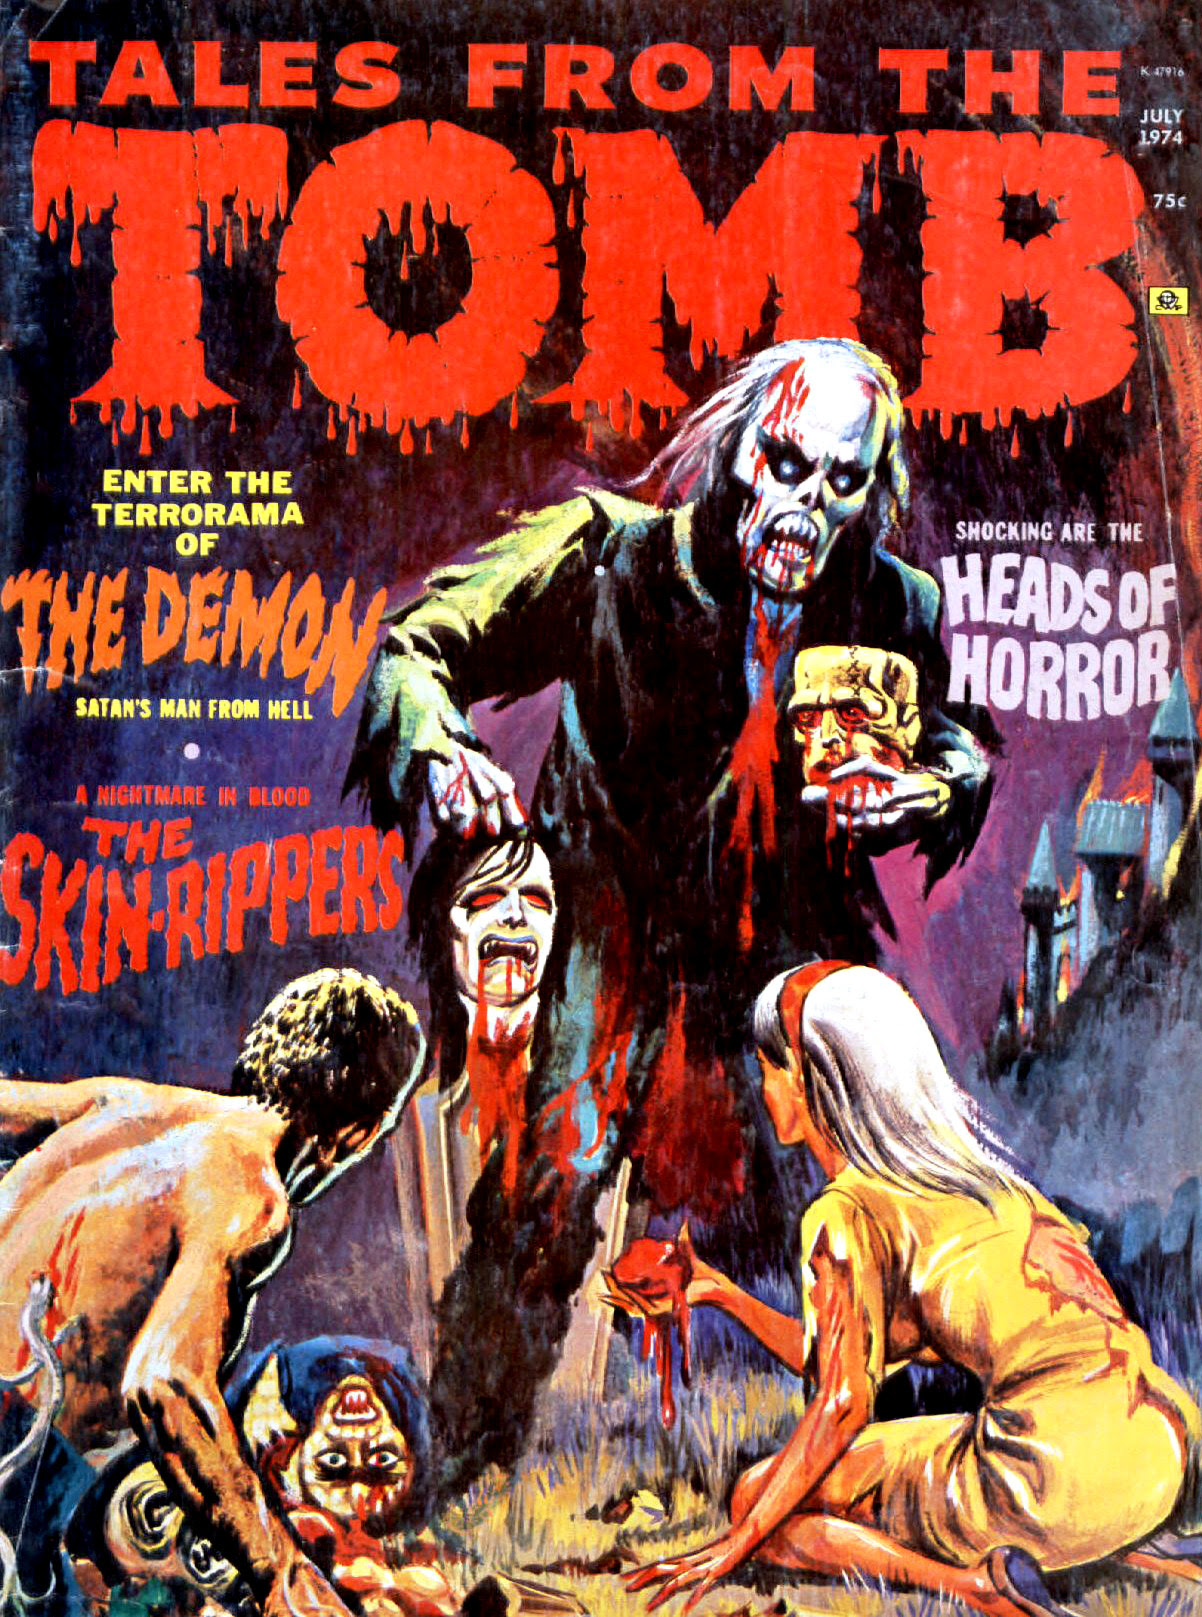 Tales from the Tomb - Vol. 6 #4 (Eerie Publications, 1974)